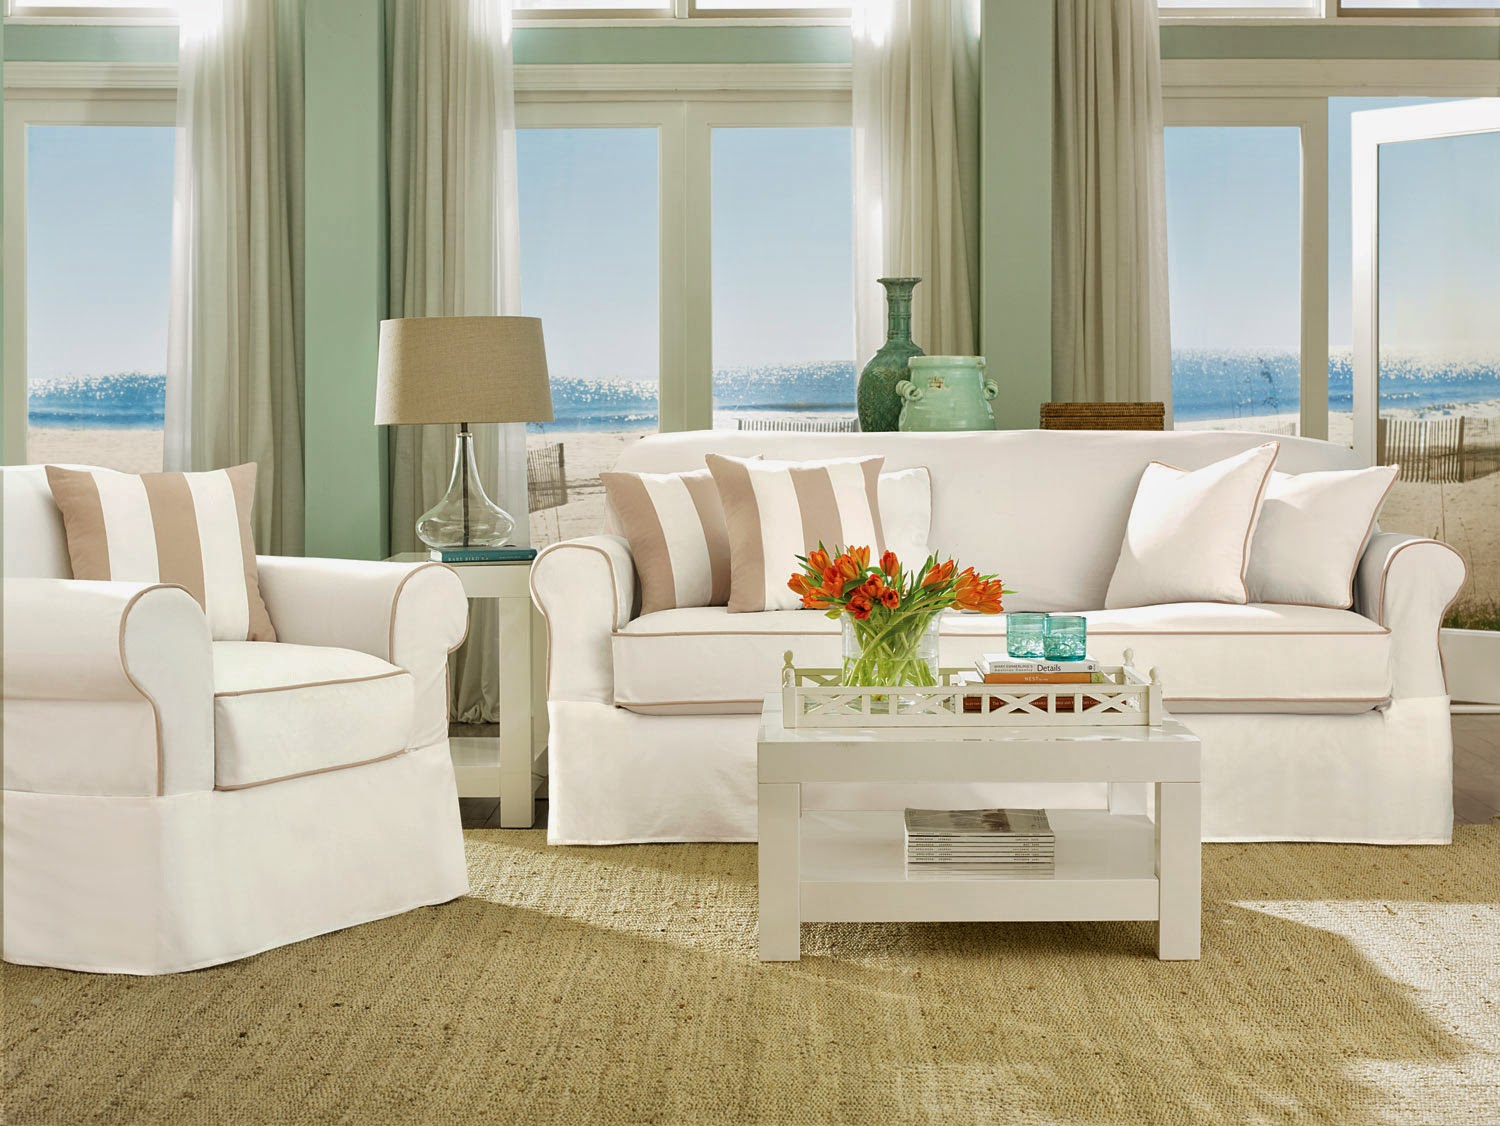 Beach House Sofa Slipcover Designs For Small Drawing Room In India Sure Fit Slipcovers Turn Your Home Into A Getaway